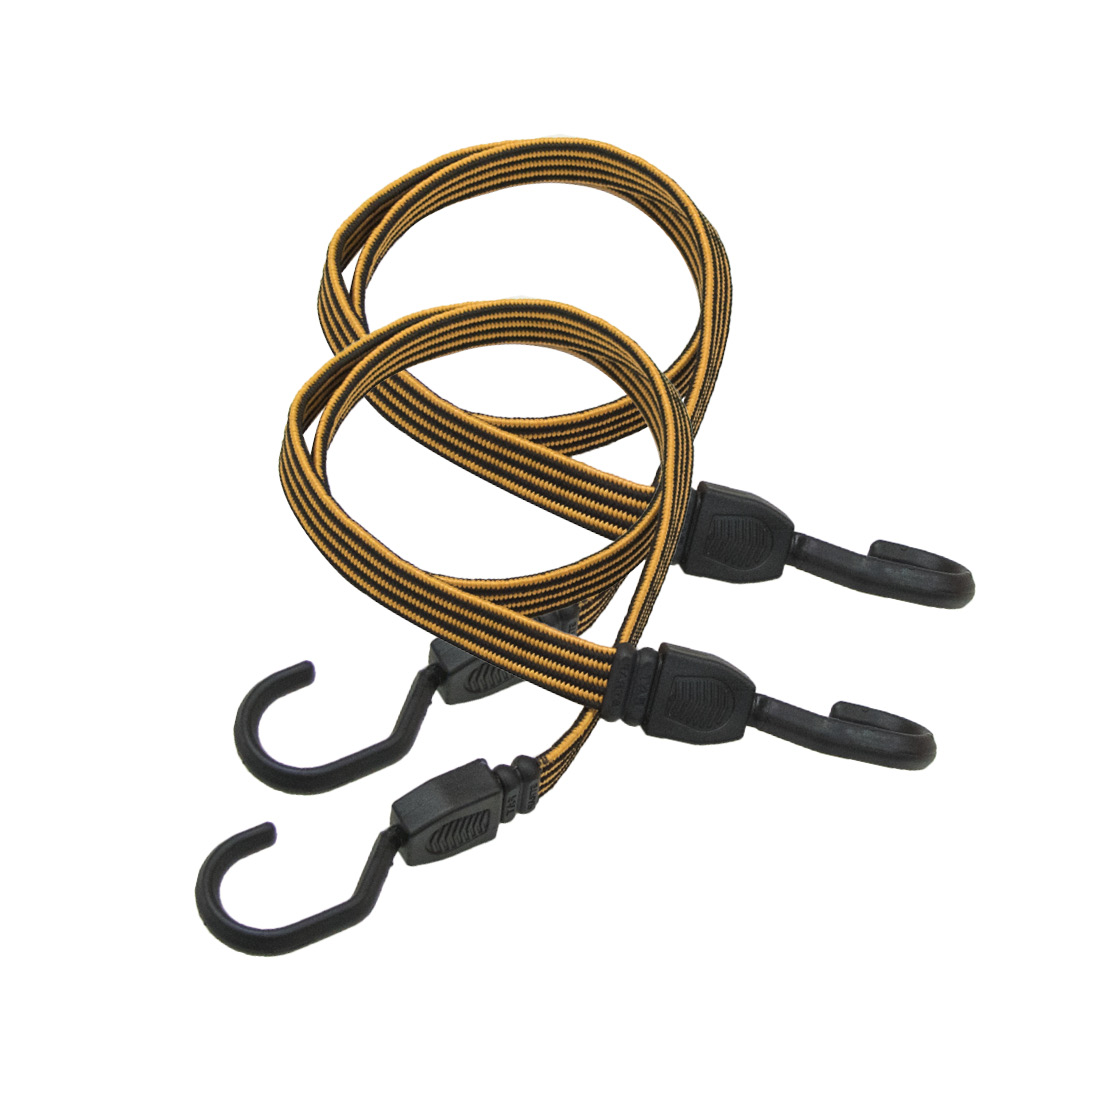 An image of UpCart Bungee Cords (2 Pack)